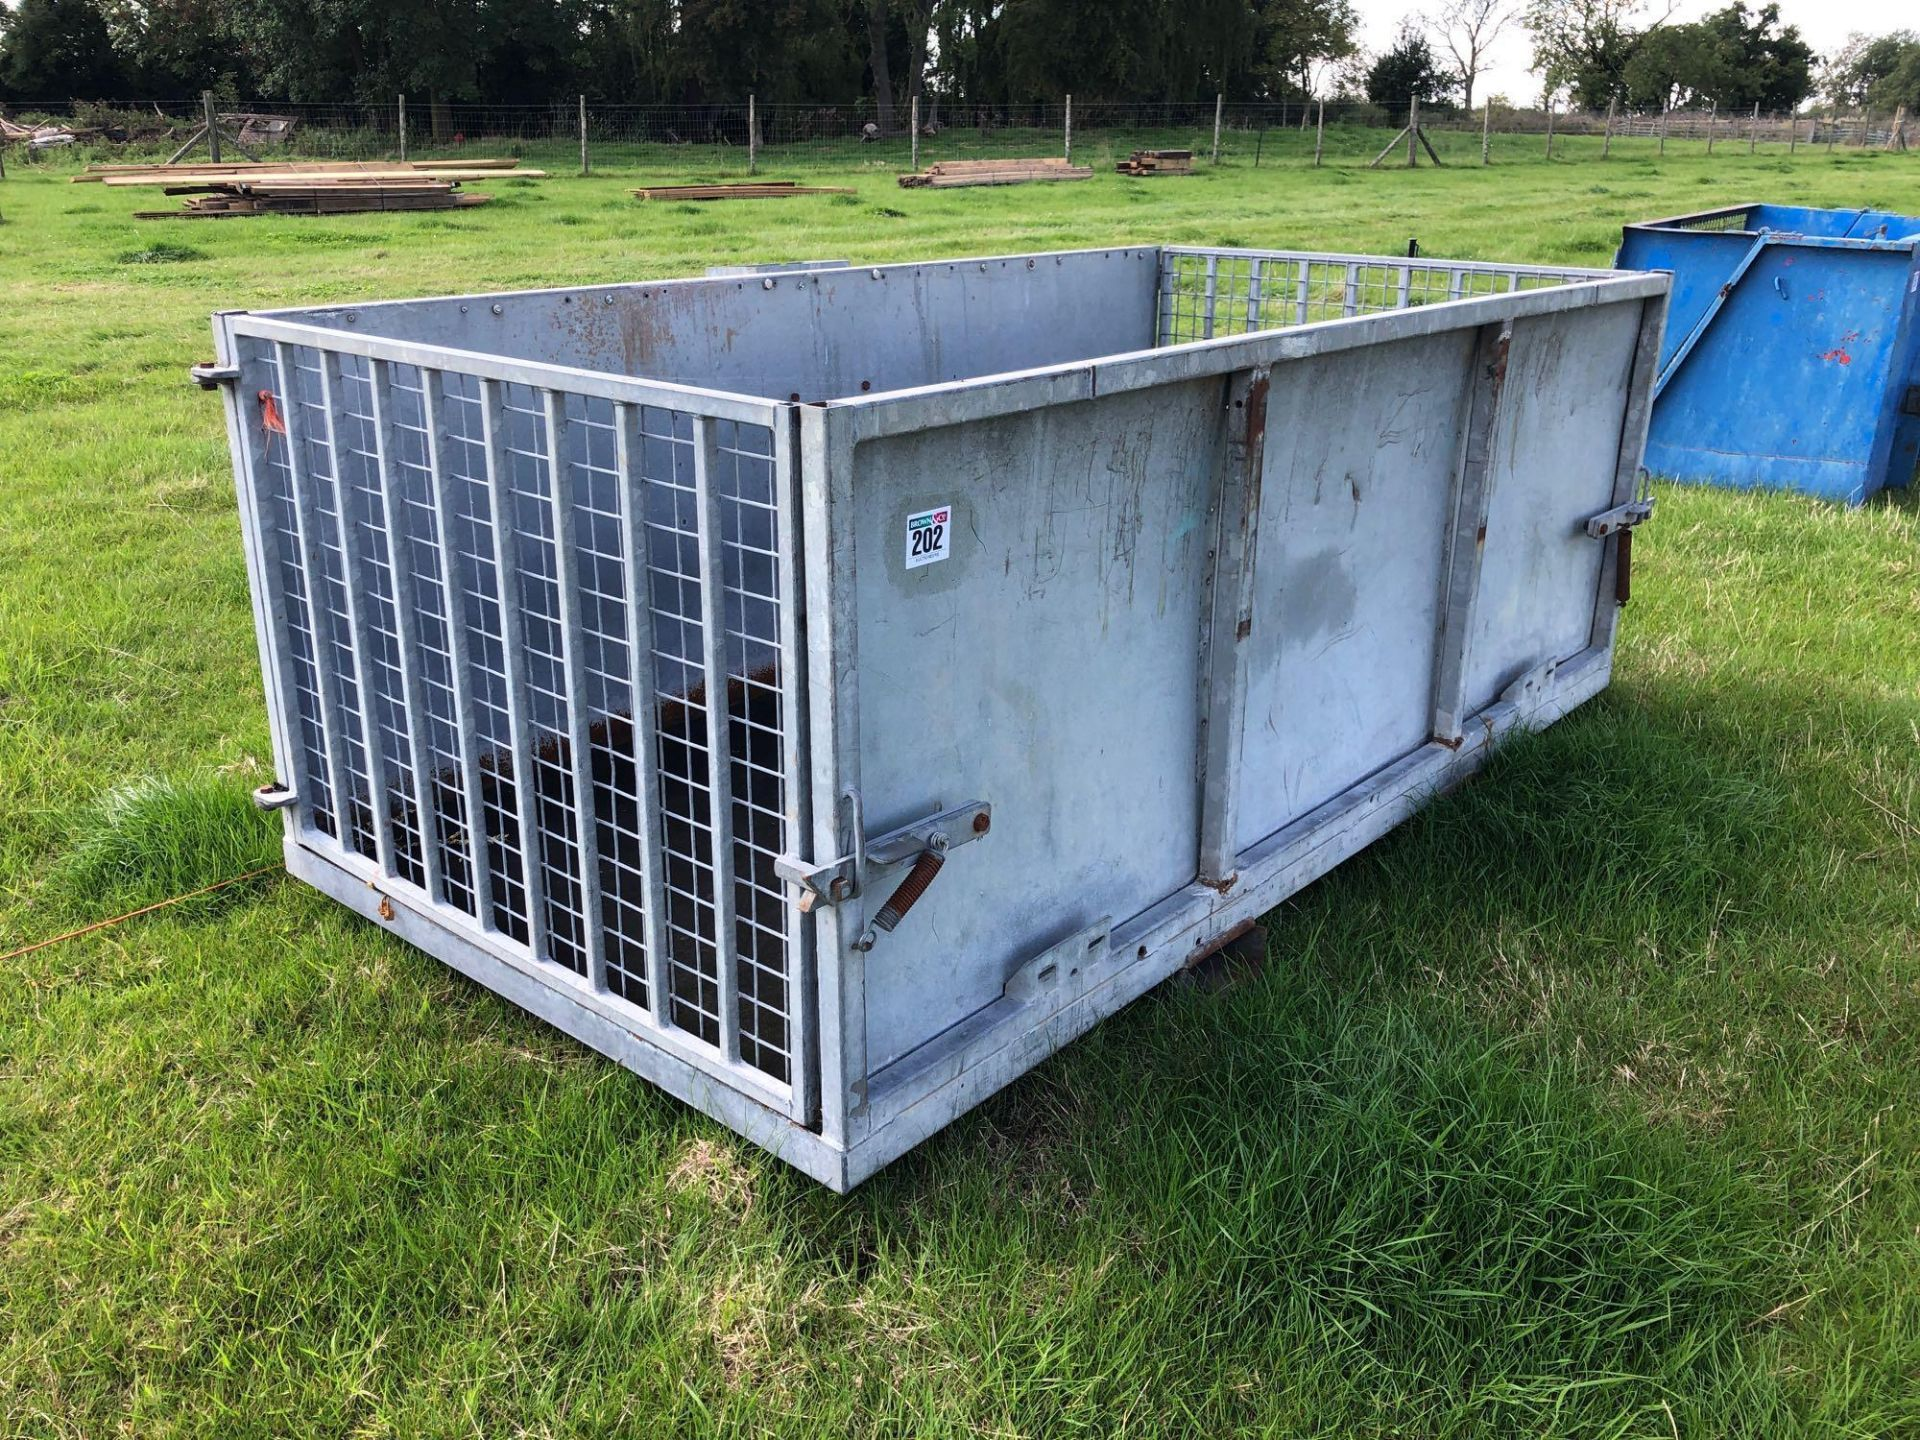 Lot 202 - Metal livestock transfer box with pallet tine attachments.